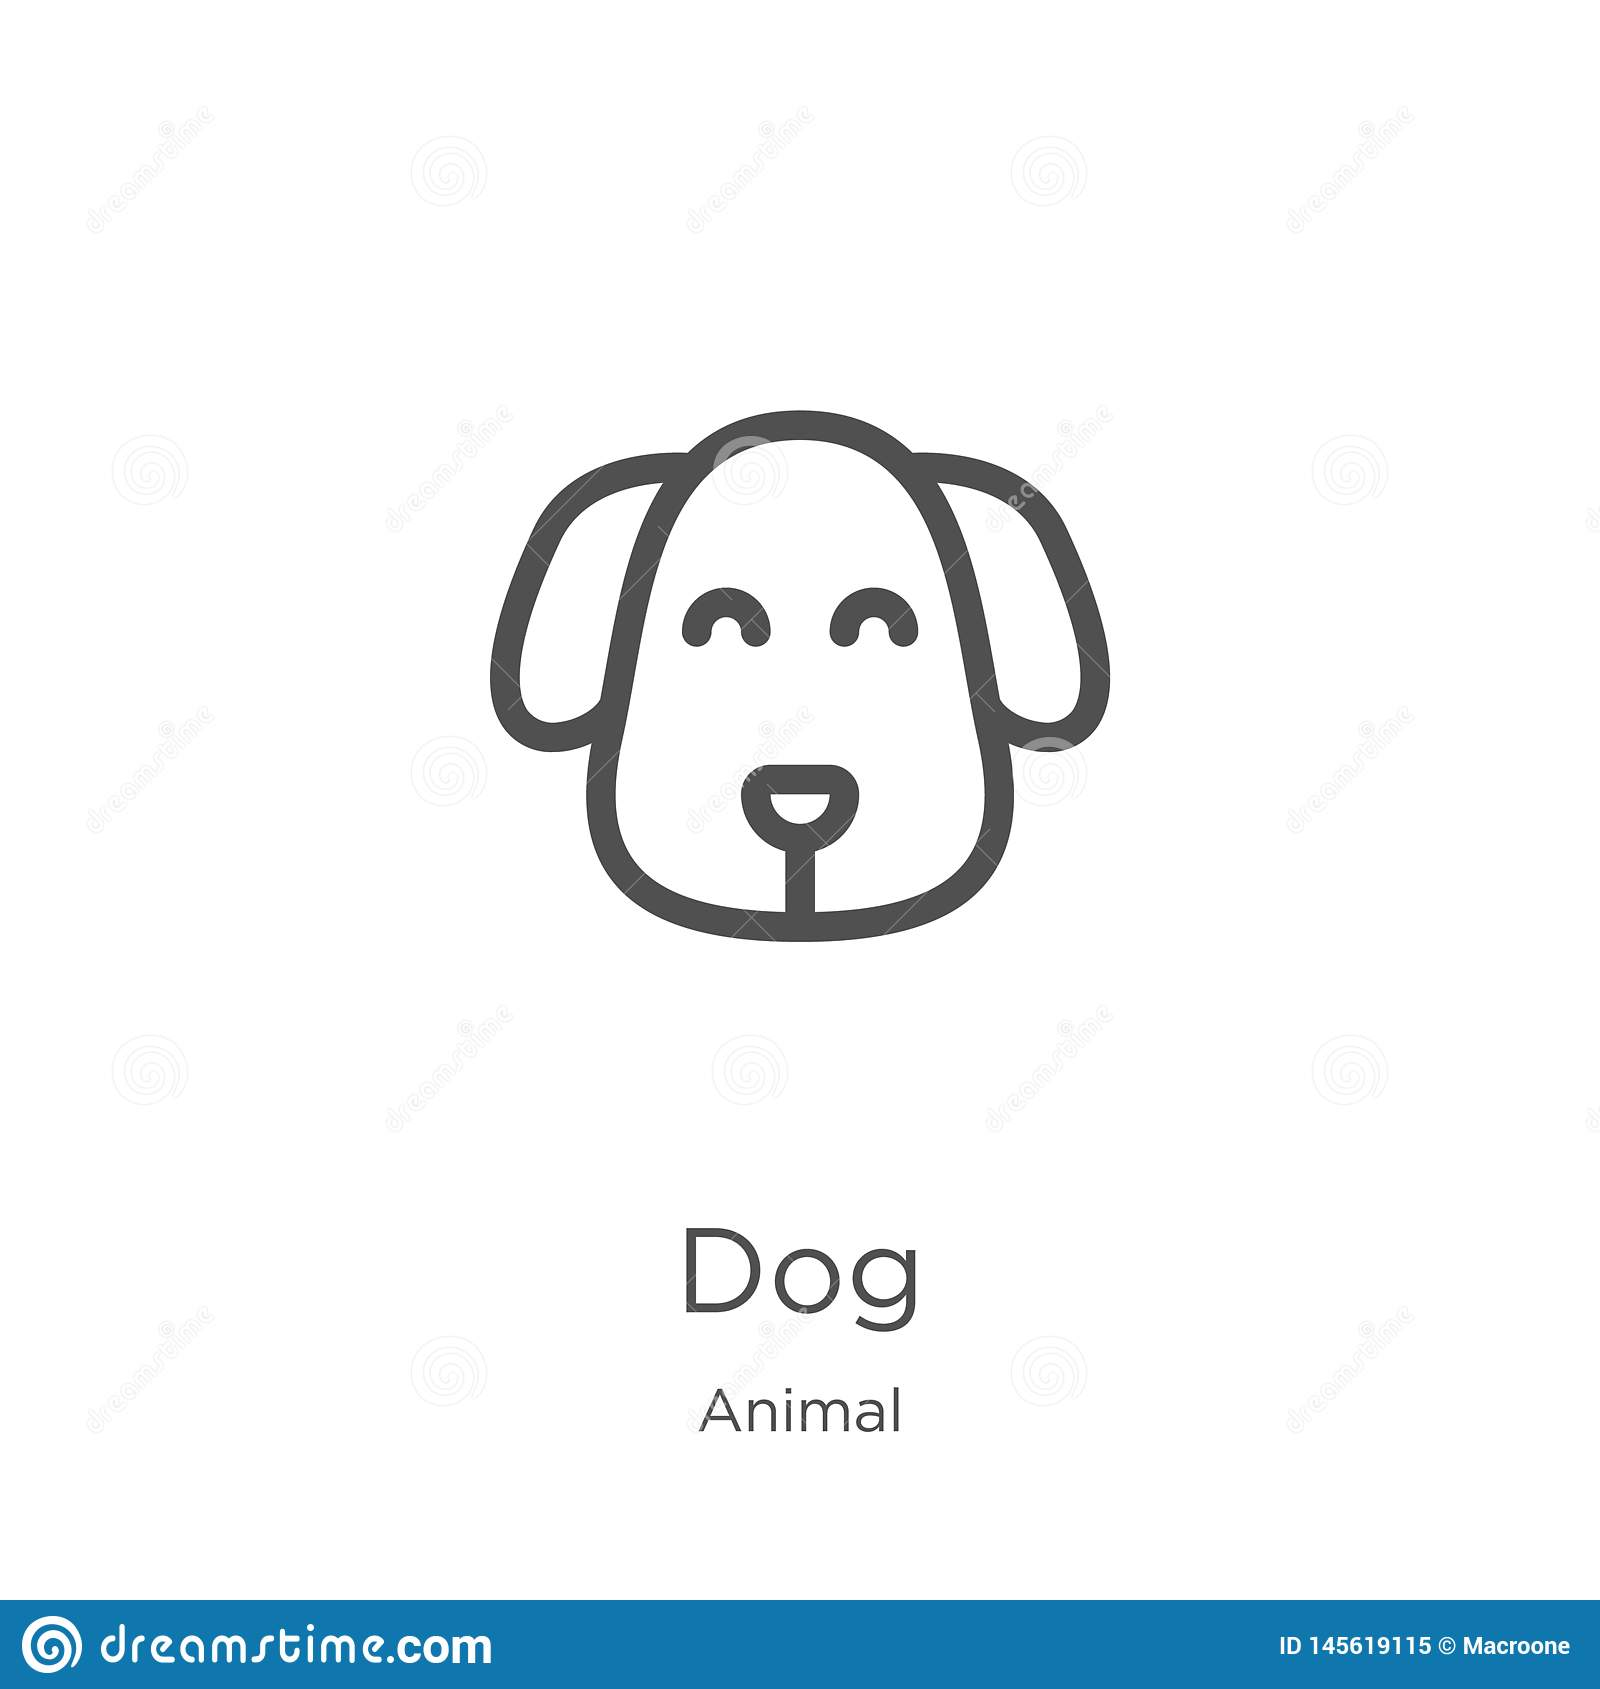 dog icon vector from animal collection. Thin line dog outline icon vector illustration. Outline, thin line dog icon for website